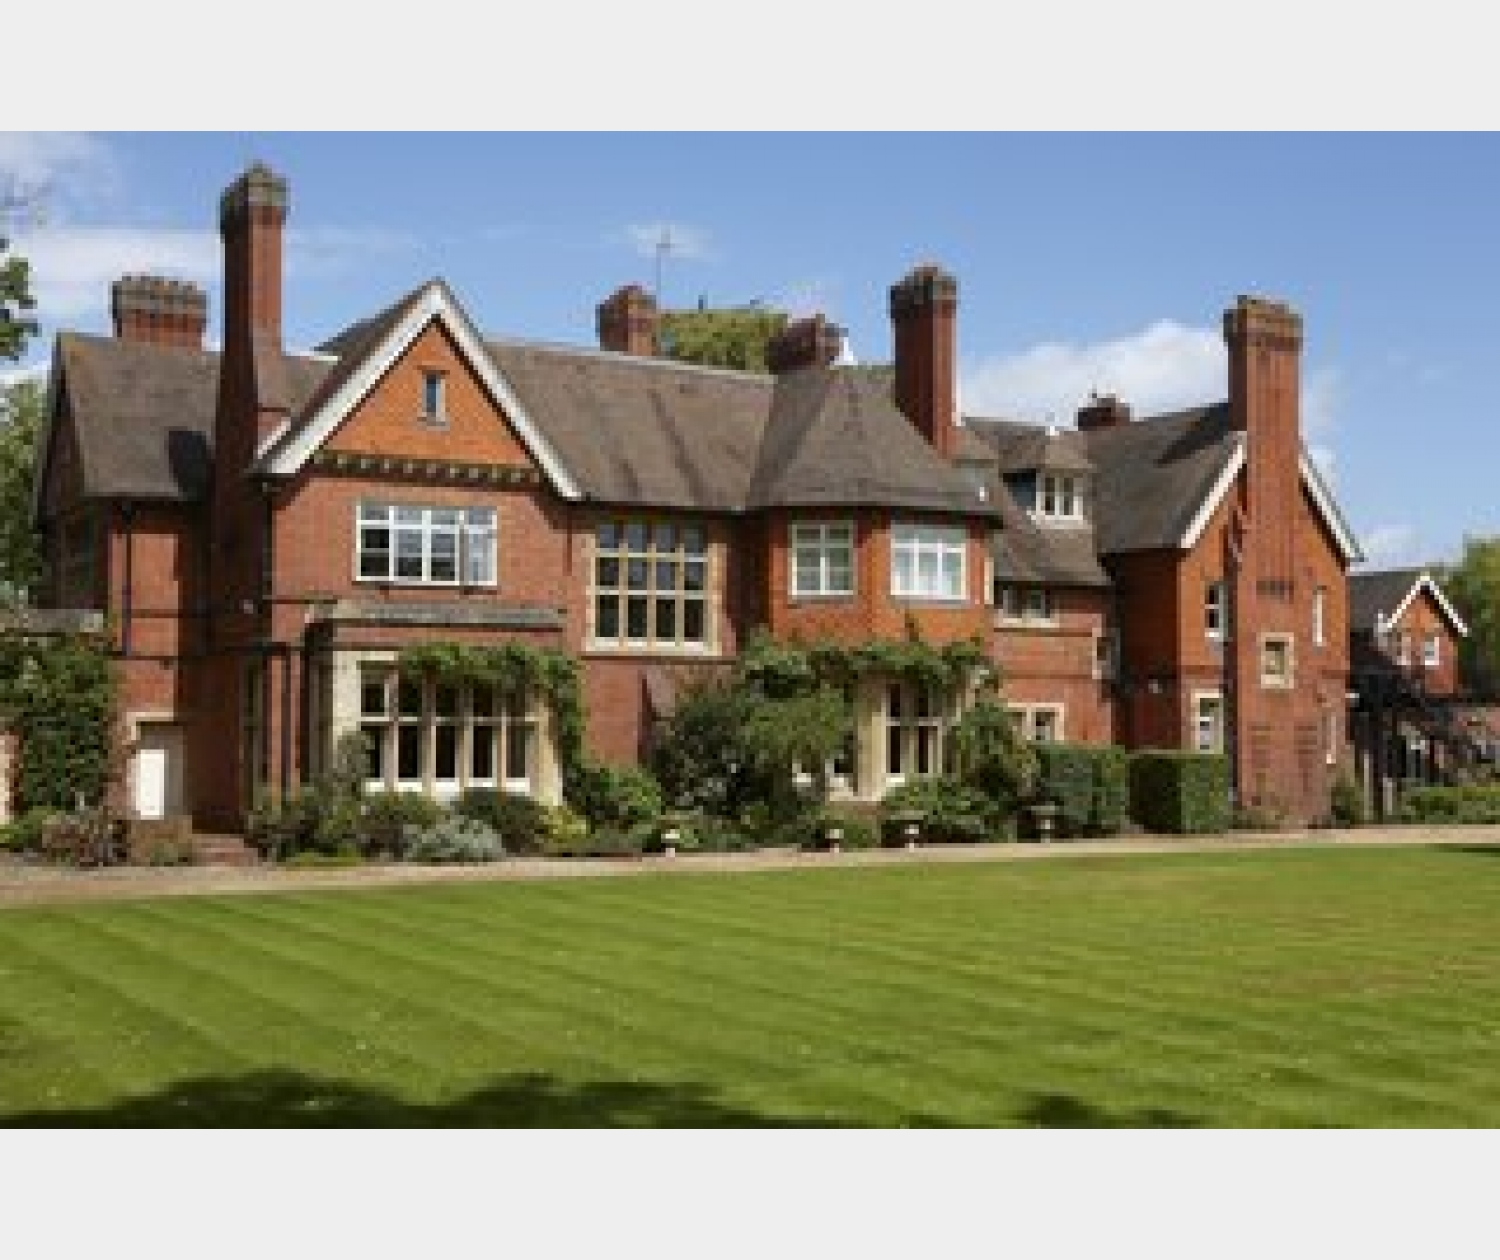 Cantley House Hotel Wedding Fair Sun 13th Oct